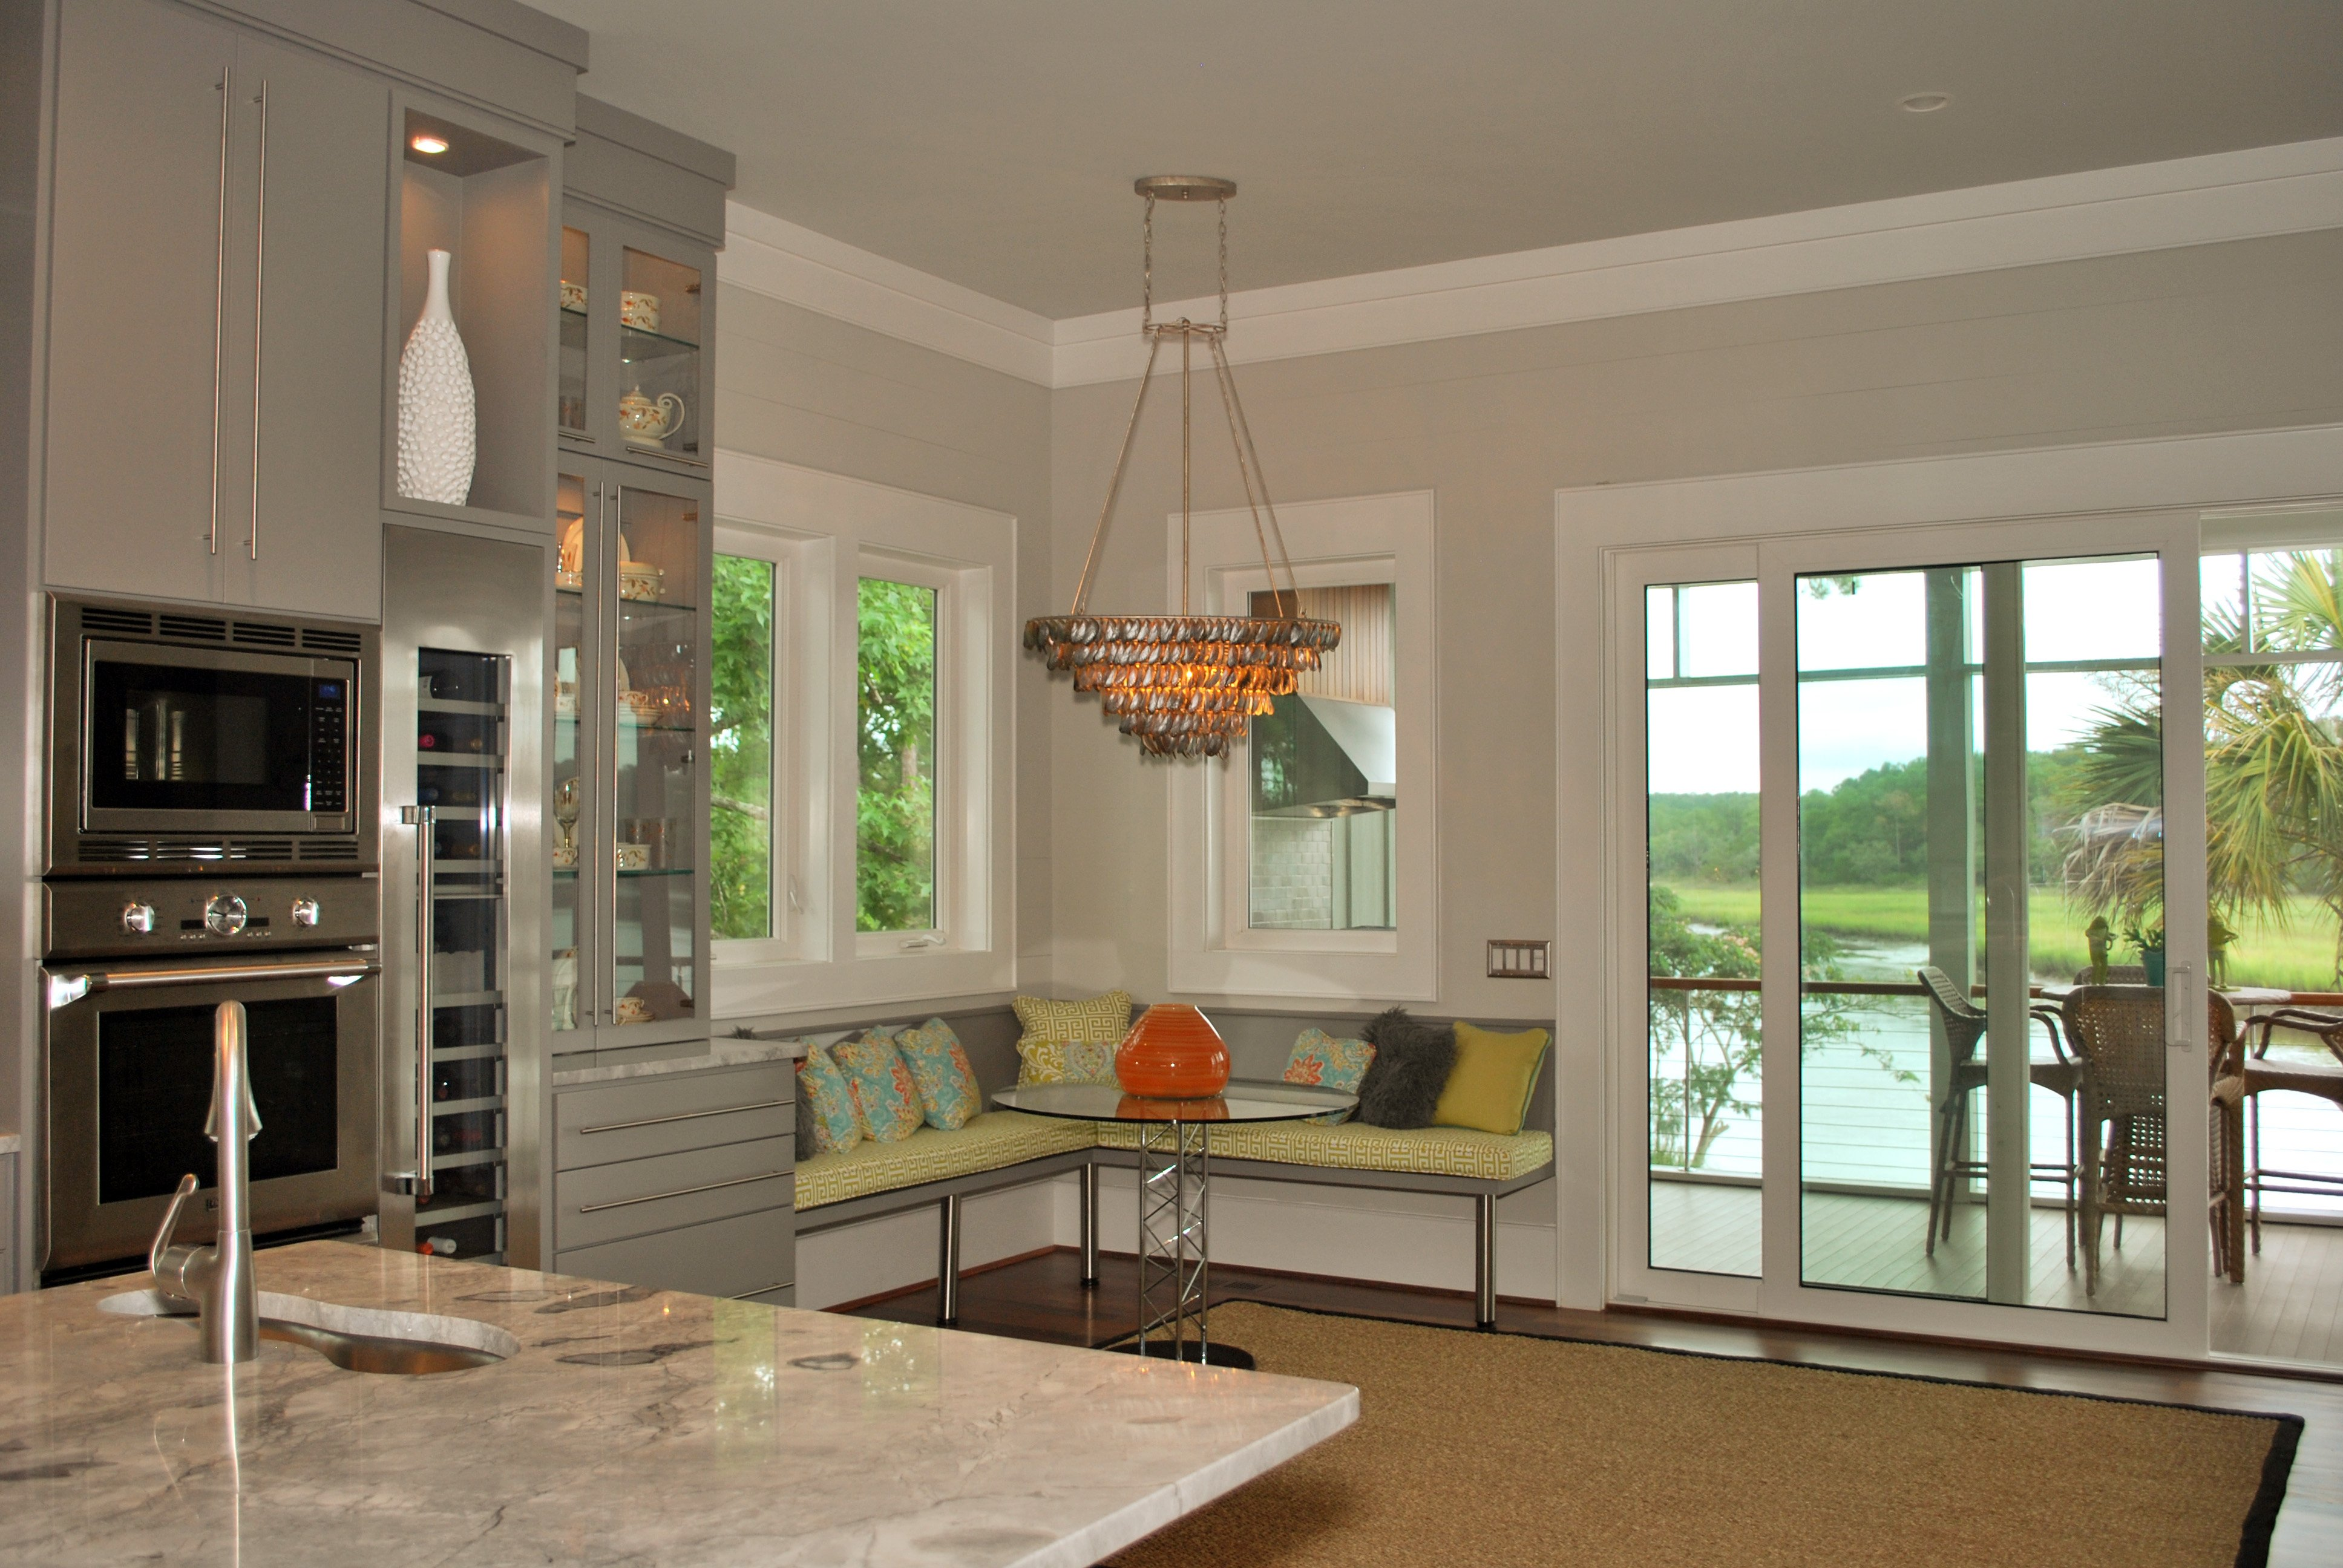 Corner built-in breakfast nook with green cushions and glass table with modern chandelier overhead, sliding glass door to patio on right.